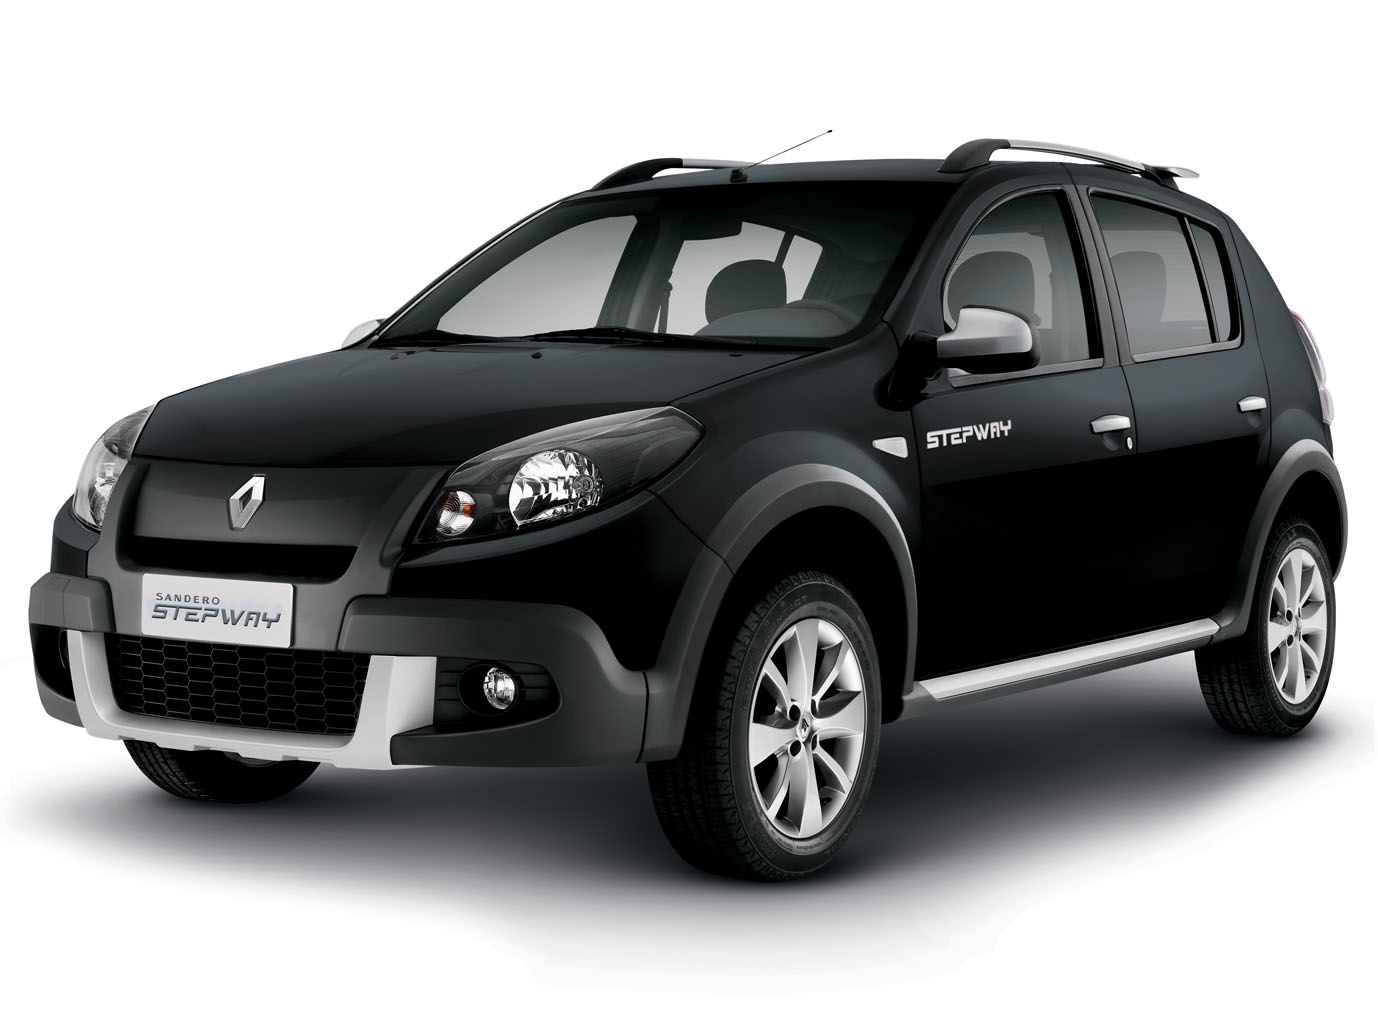 2012 Renault Sandero Stepway Pictures Information And